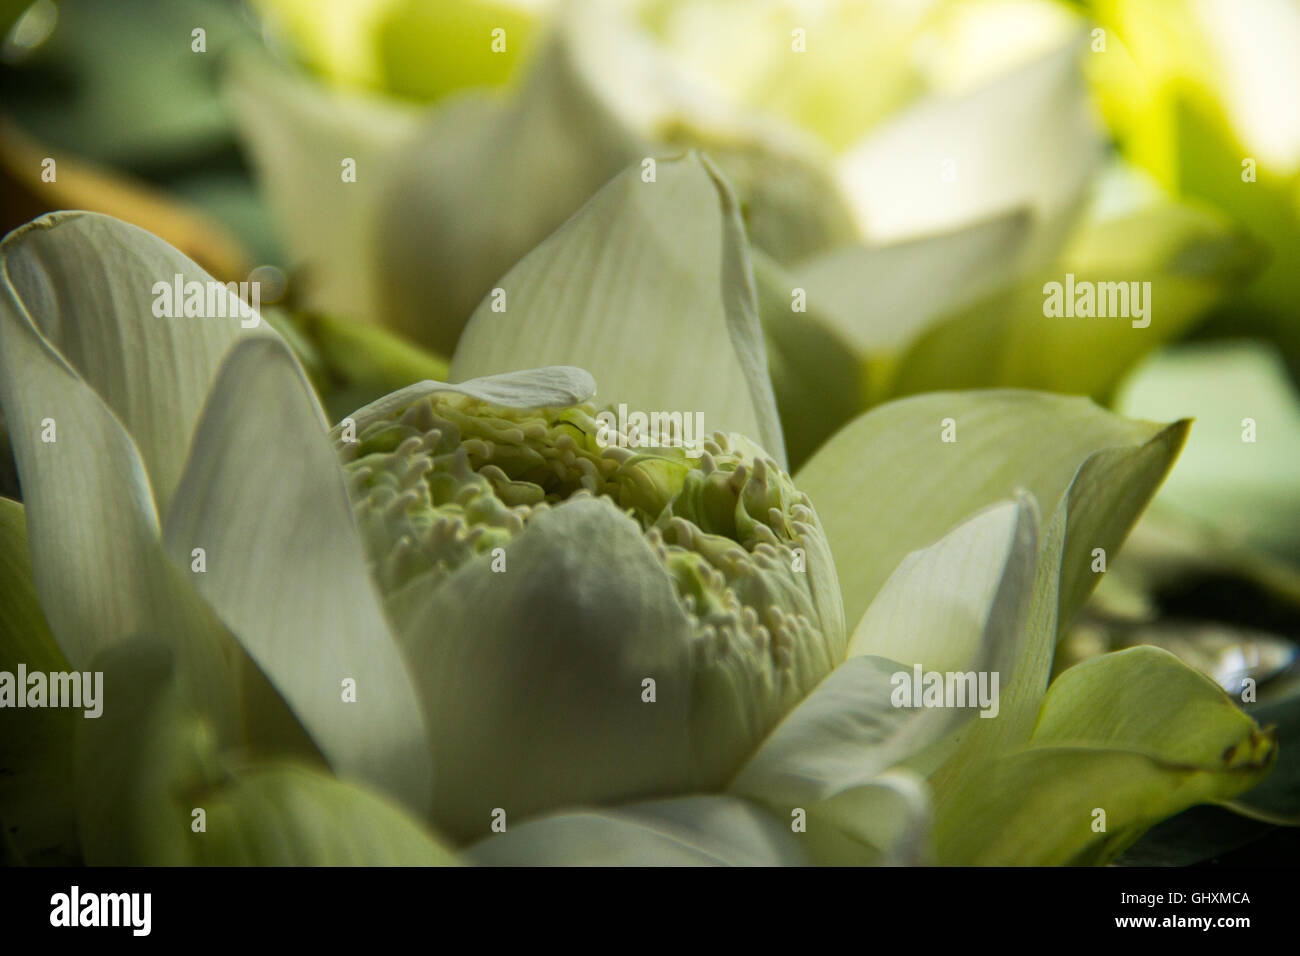 Lotus blossoms at a flower market in Chiang Mai, Thailand - Stock Image